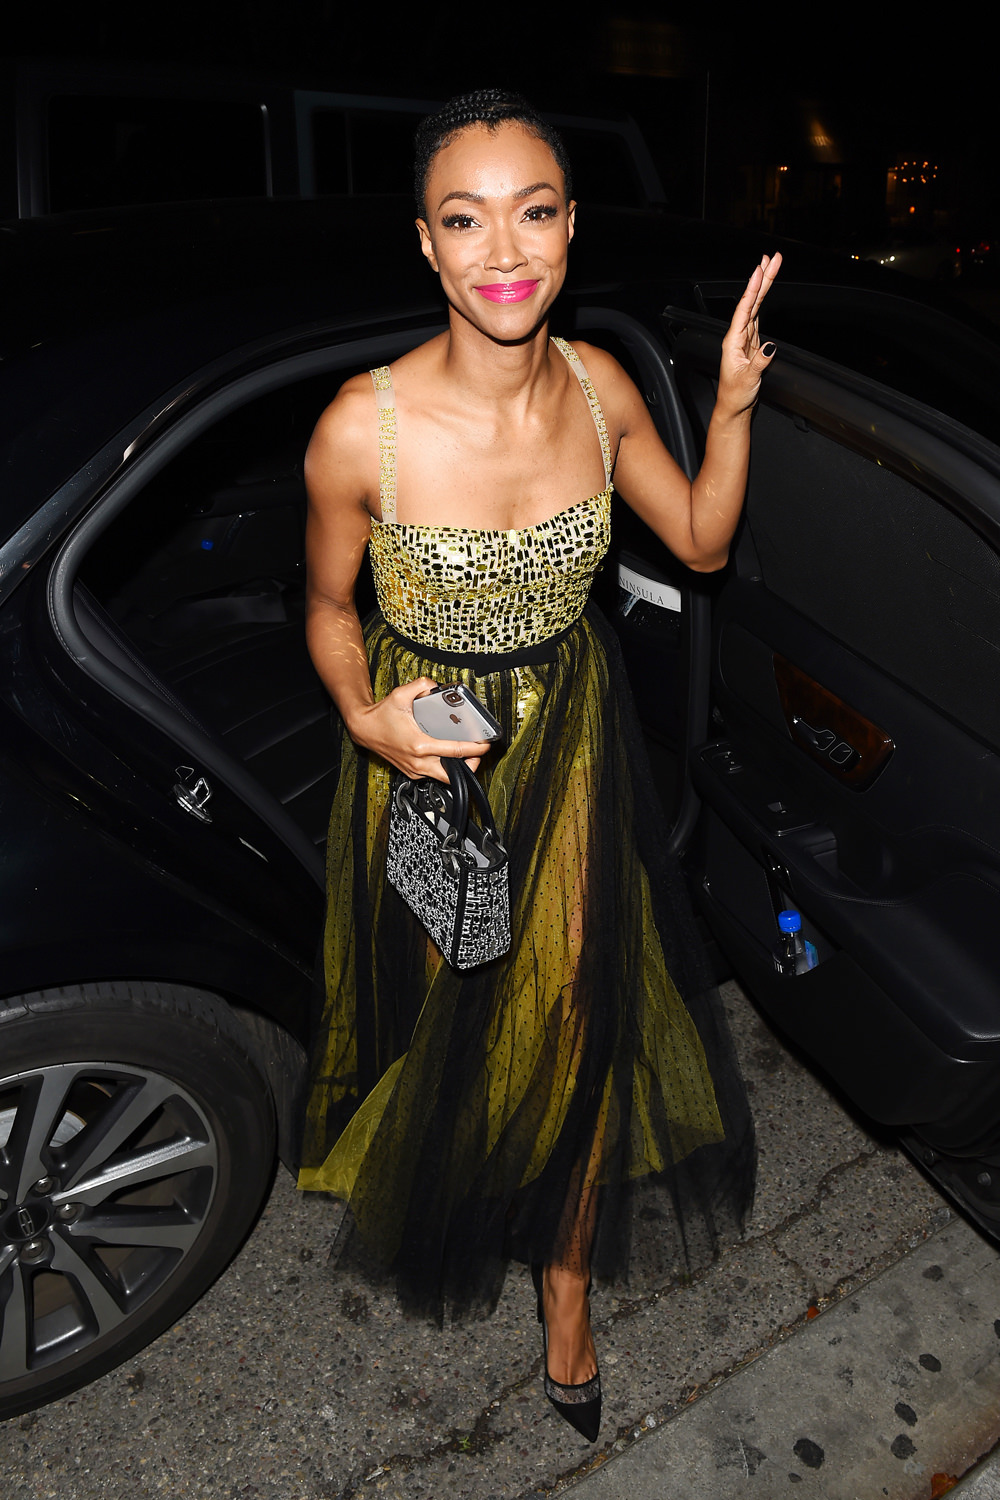 Sonequa Martin-Green at Christian Dior Party